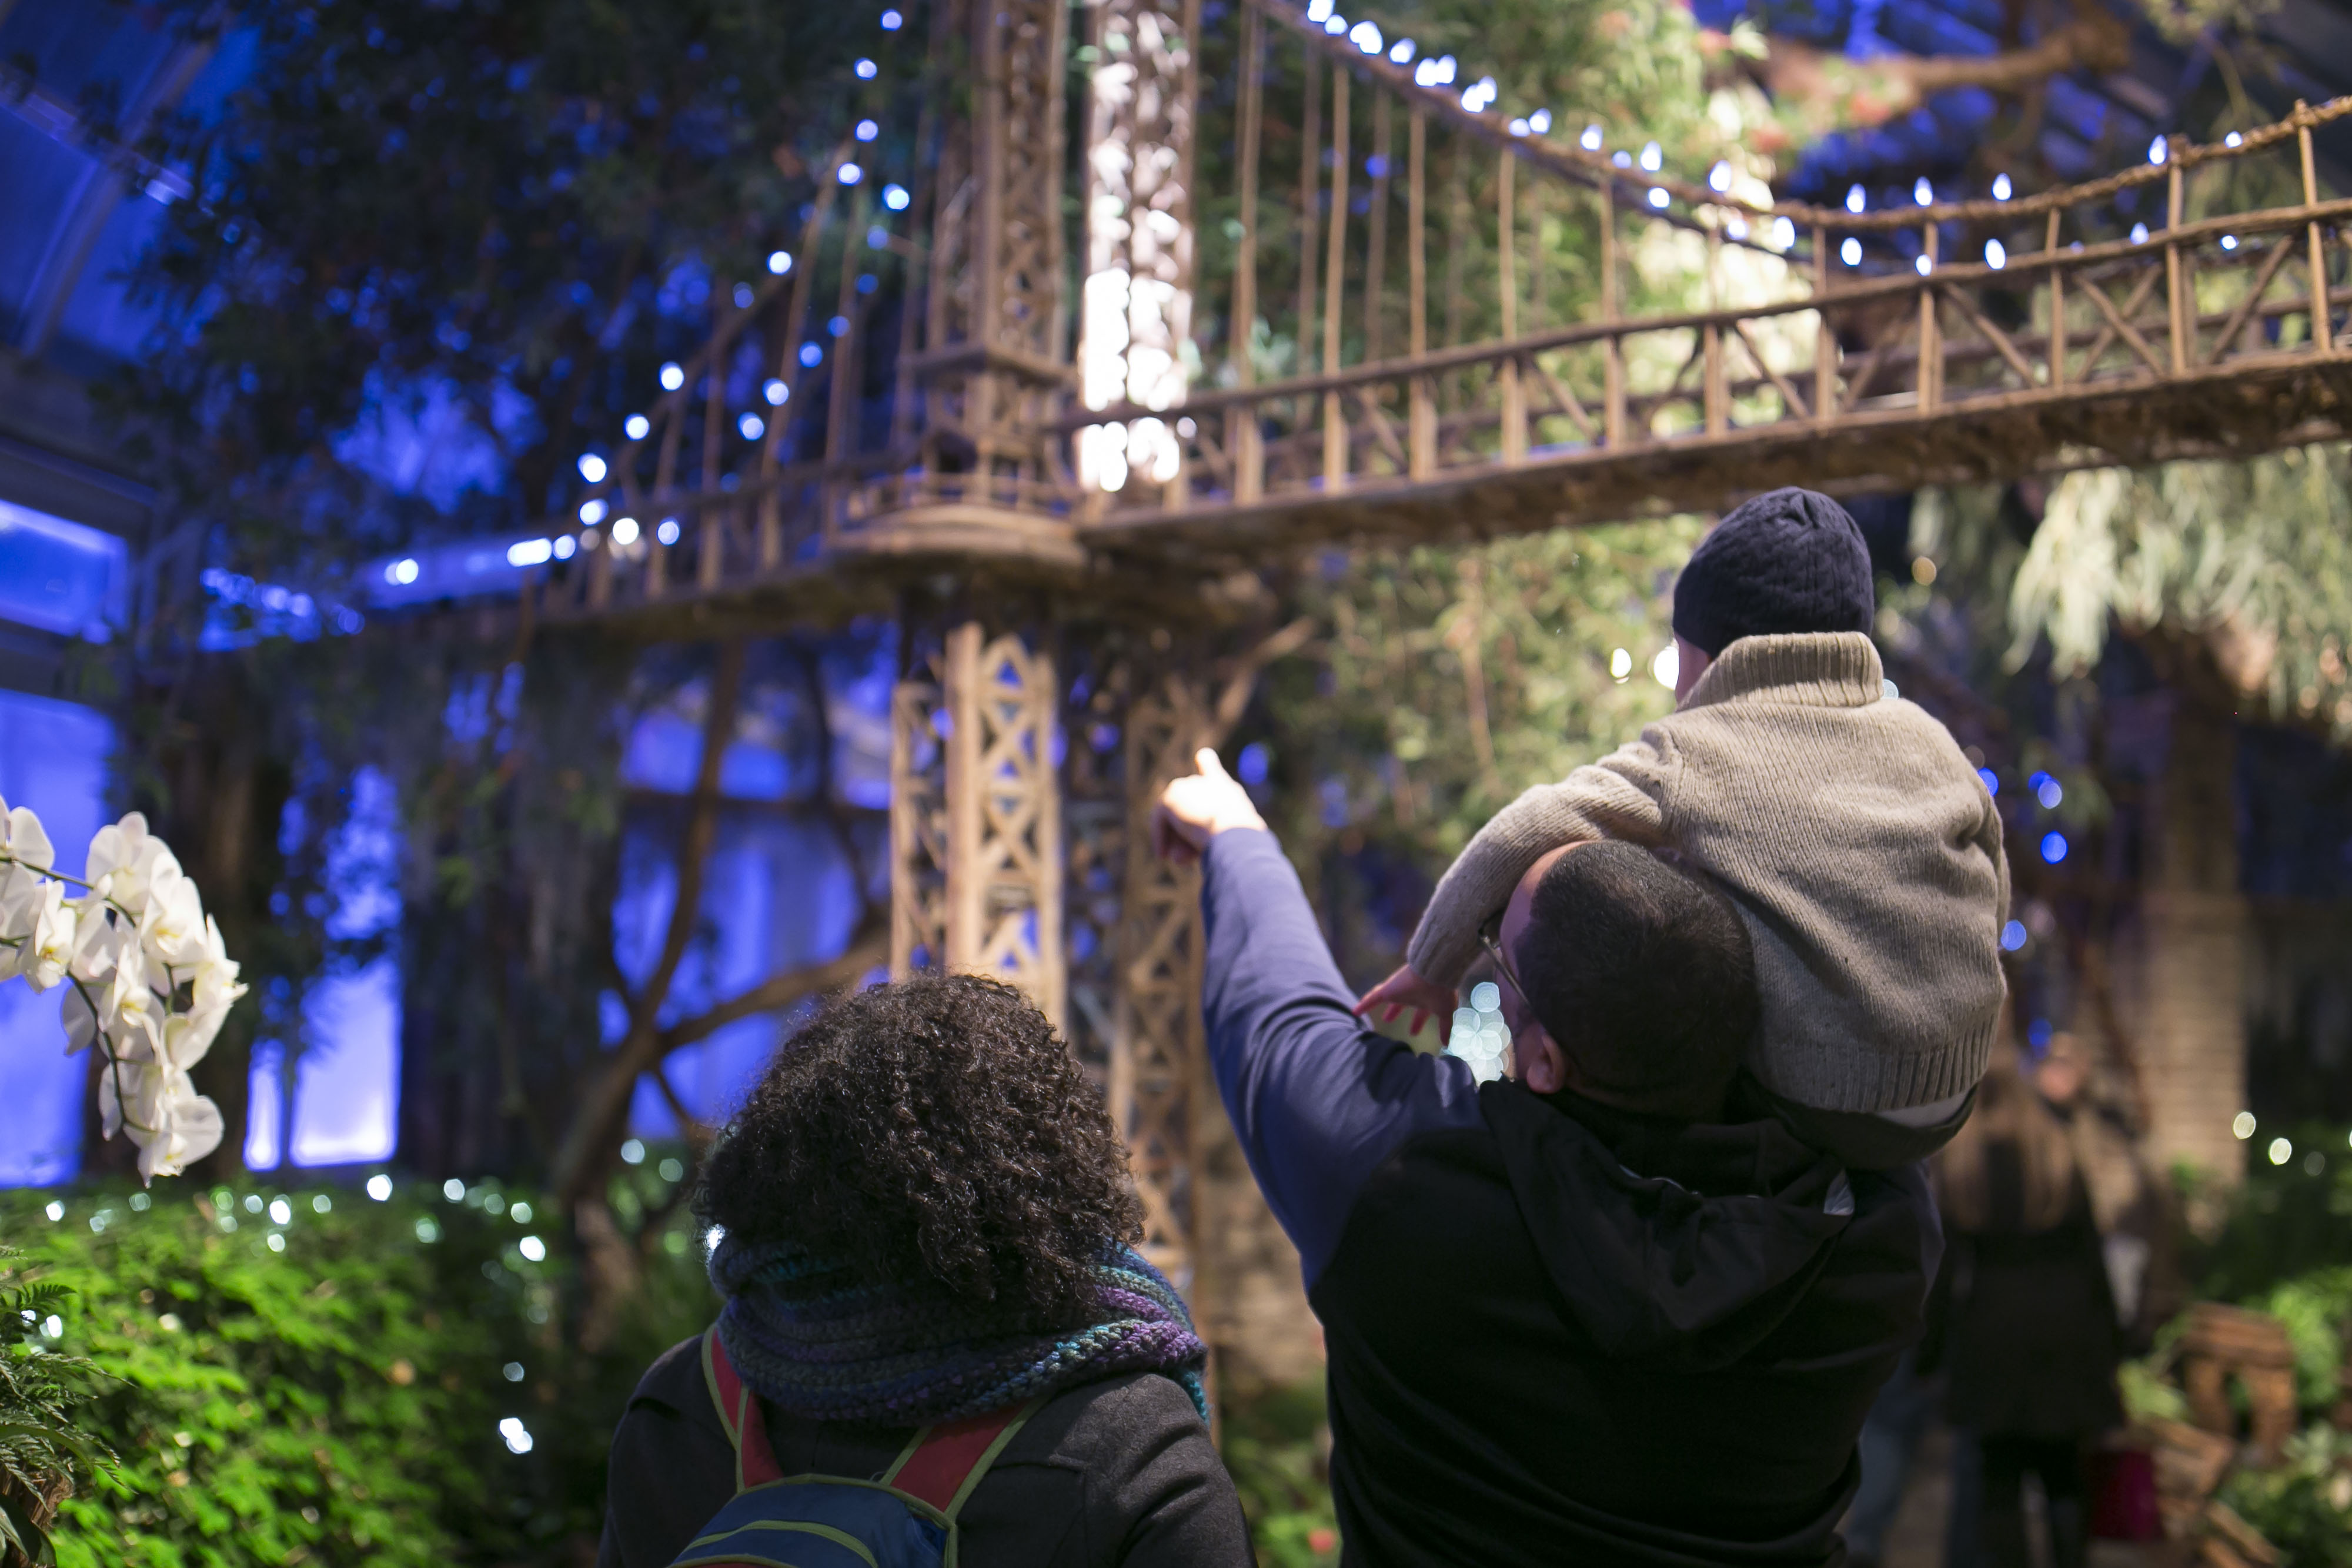 Nybg holiday train show ticket giveaway discount code - New york botanical garden promo code ...